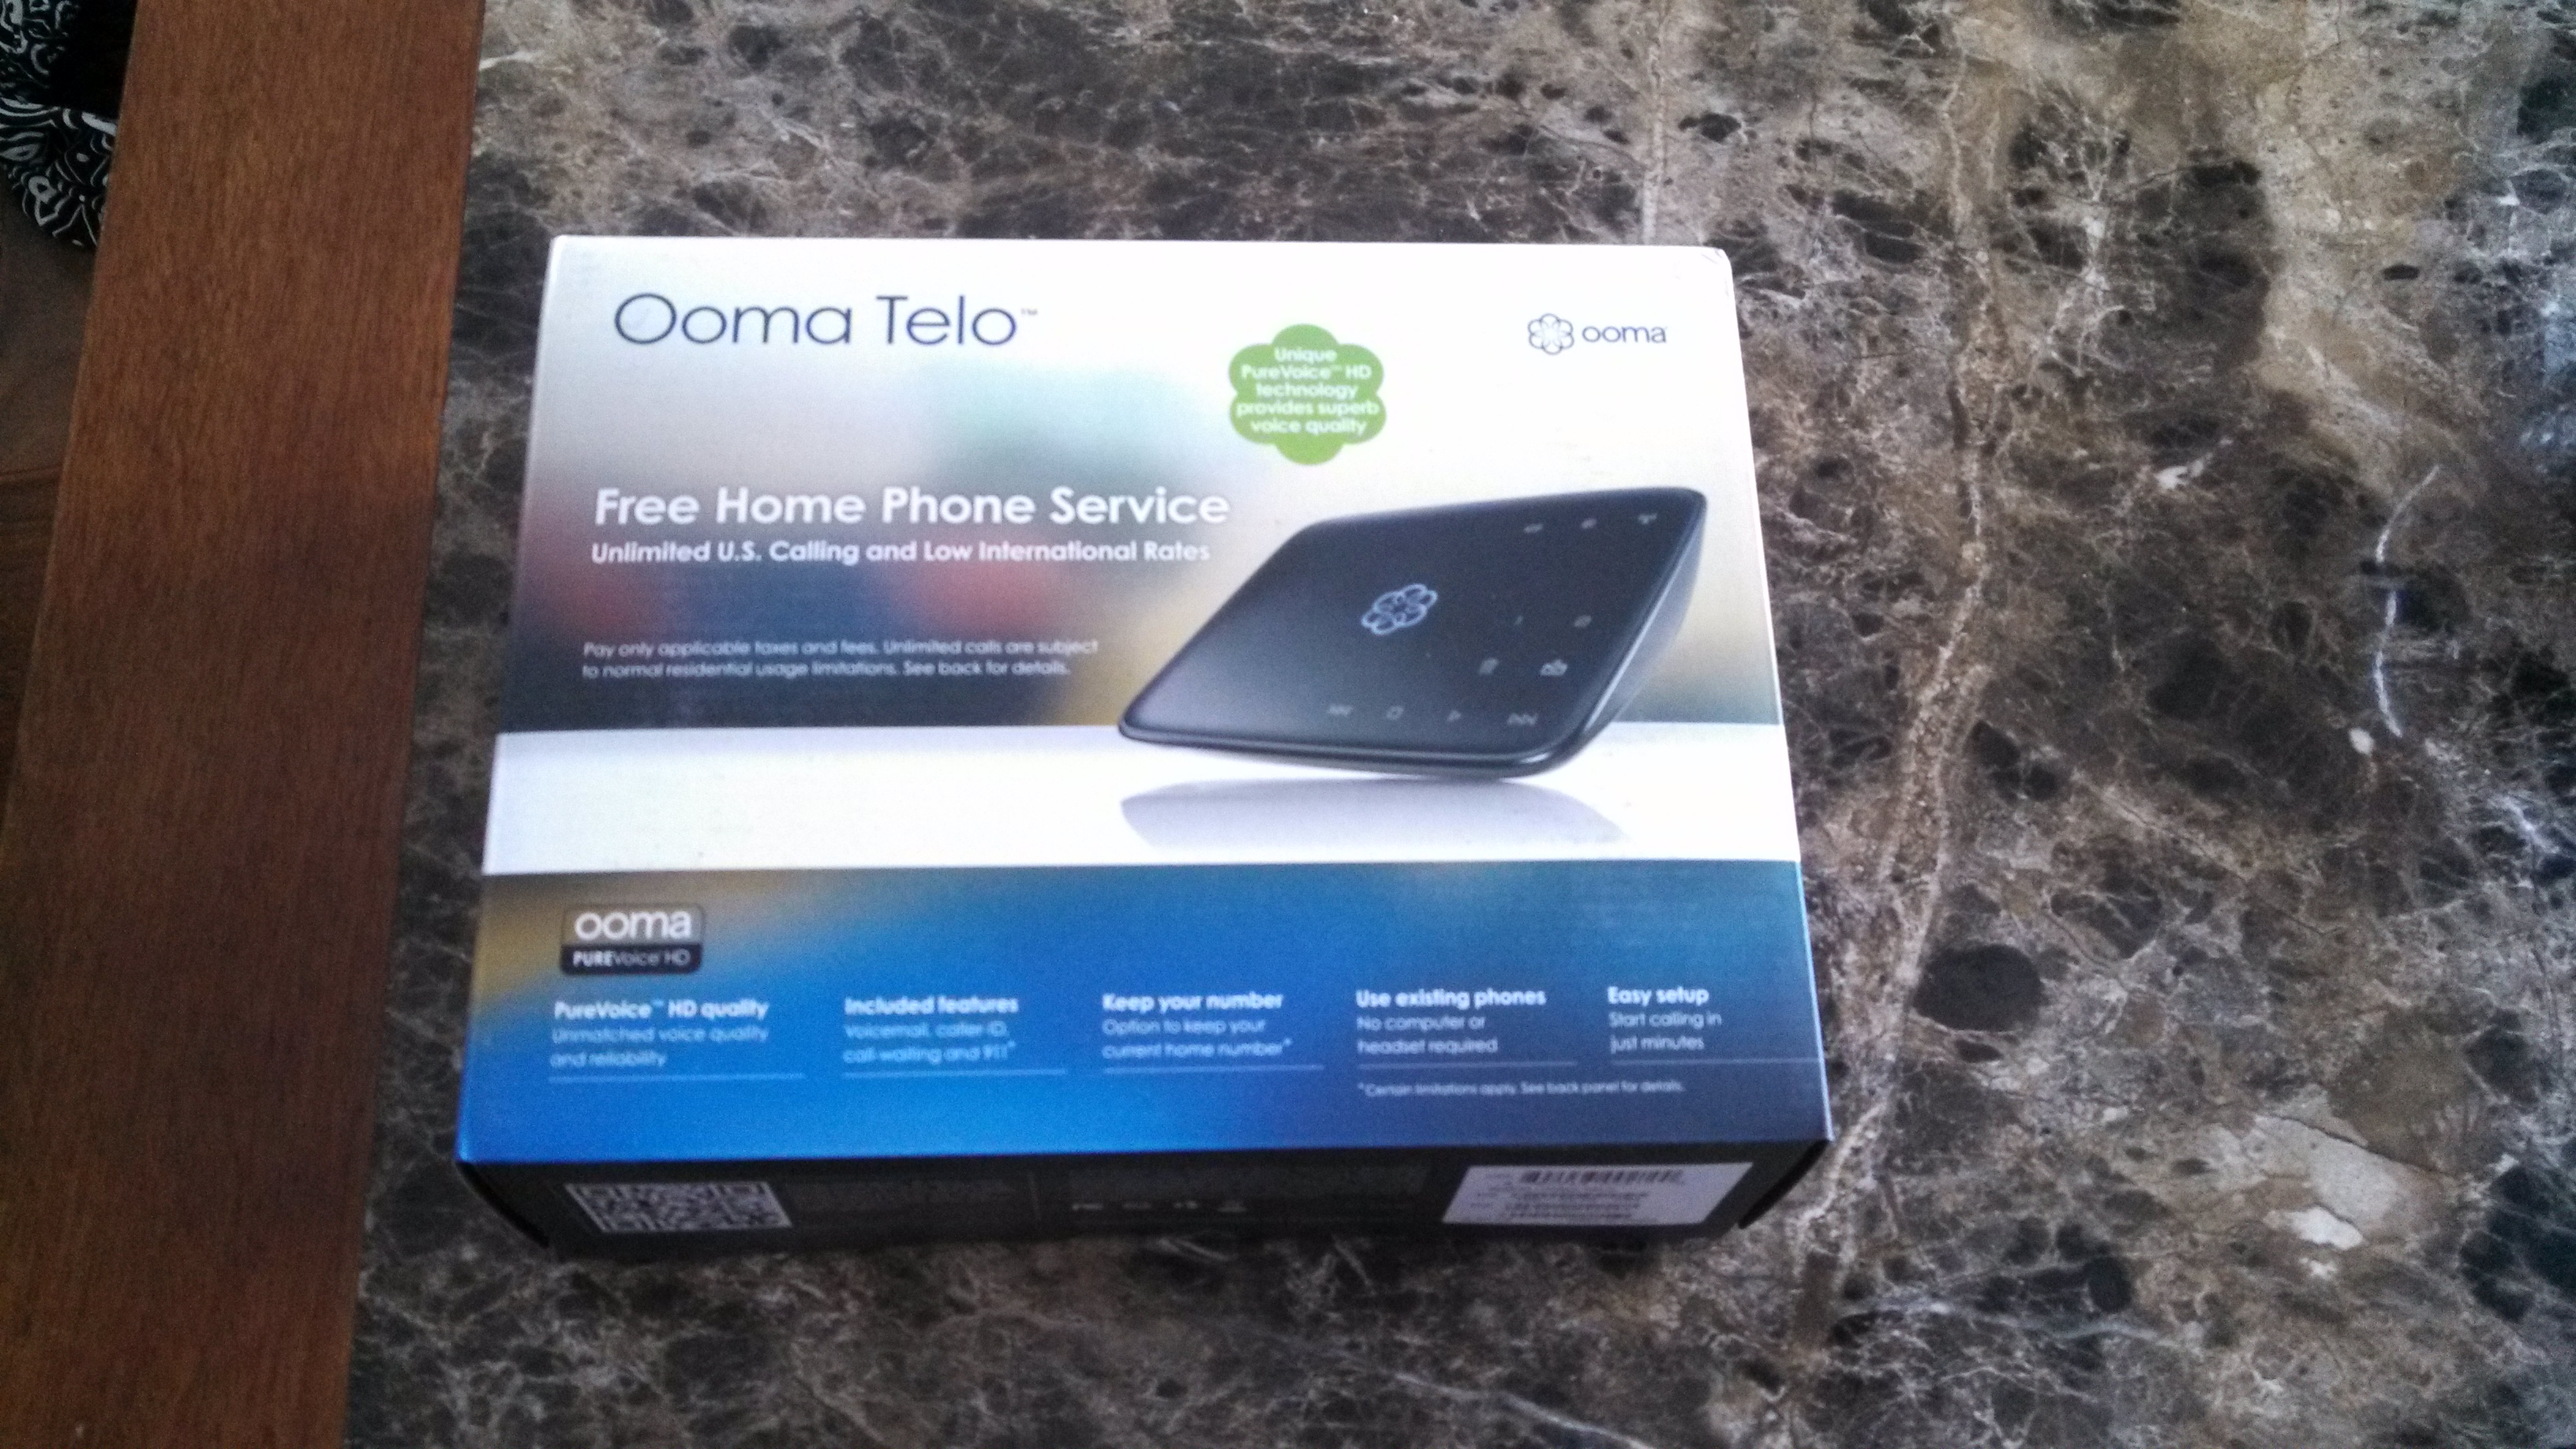 New Ooma Telo Voip Internet Voice Home Phone Service Box